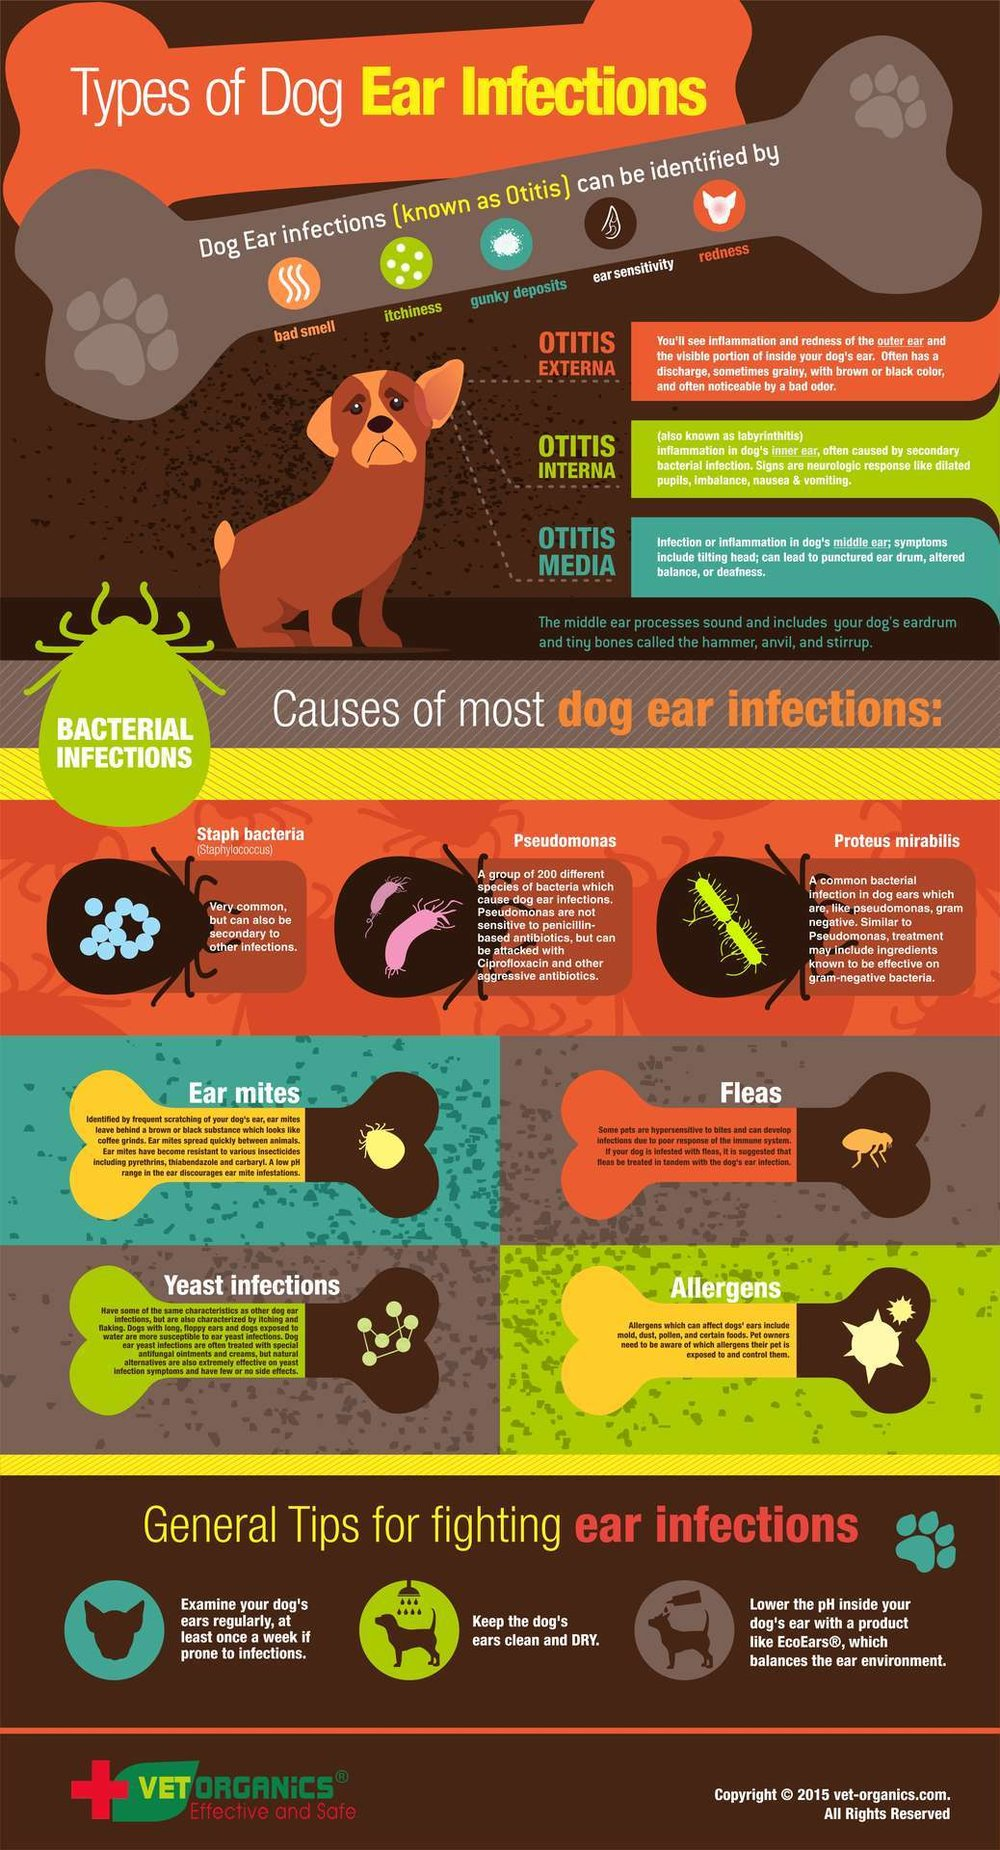 dog_ear_infographic_02-16.jpg